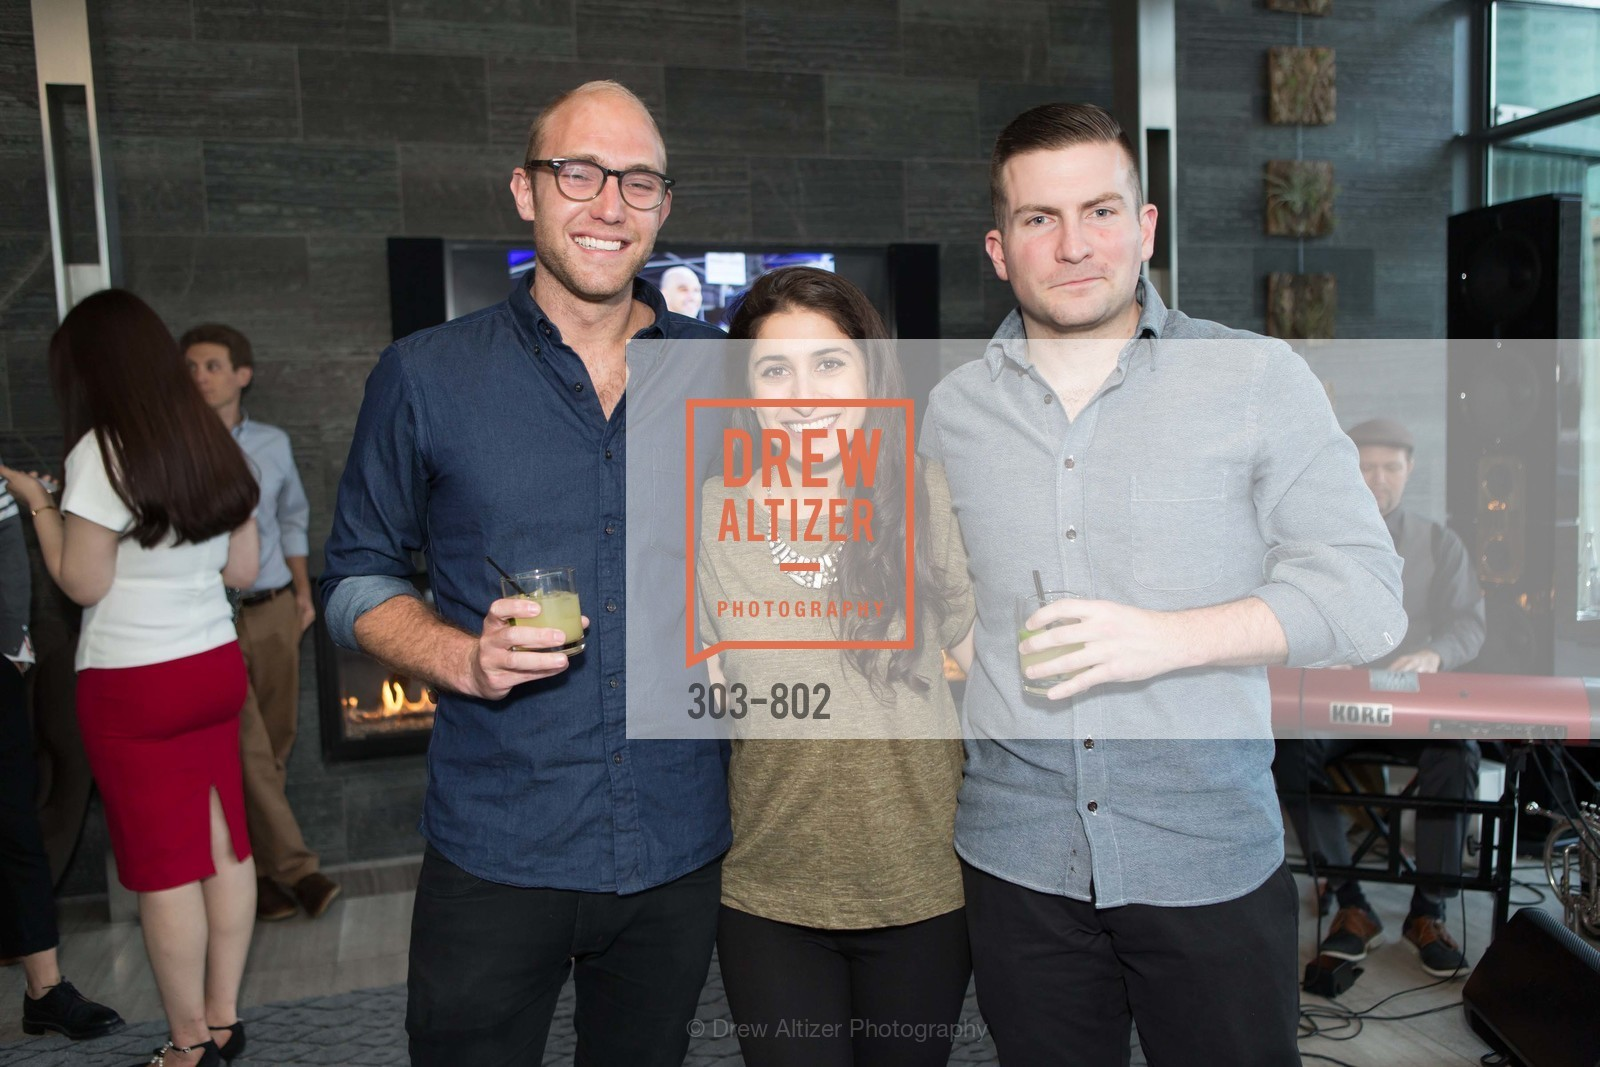 Spencer Ringkas, Sherry Ramatian, Matt Urns, MR PORTER Celebrate The San Francisco Issue of The Journal, US, April 24th, 2015,Drew Altizer, Drew Altizer Photography, full-service agency, private events, San Francisco photographer, photographer california